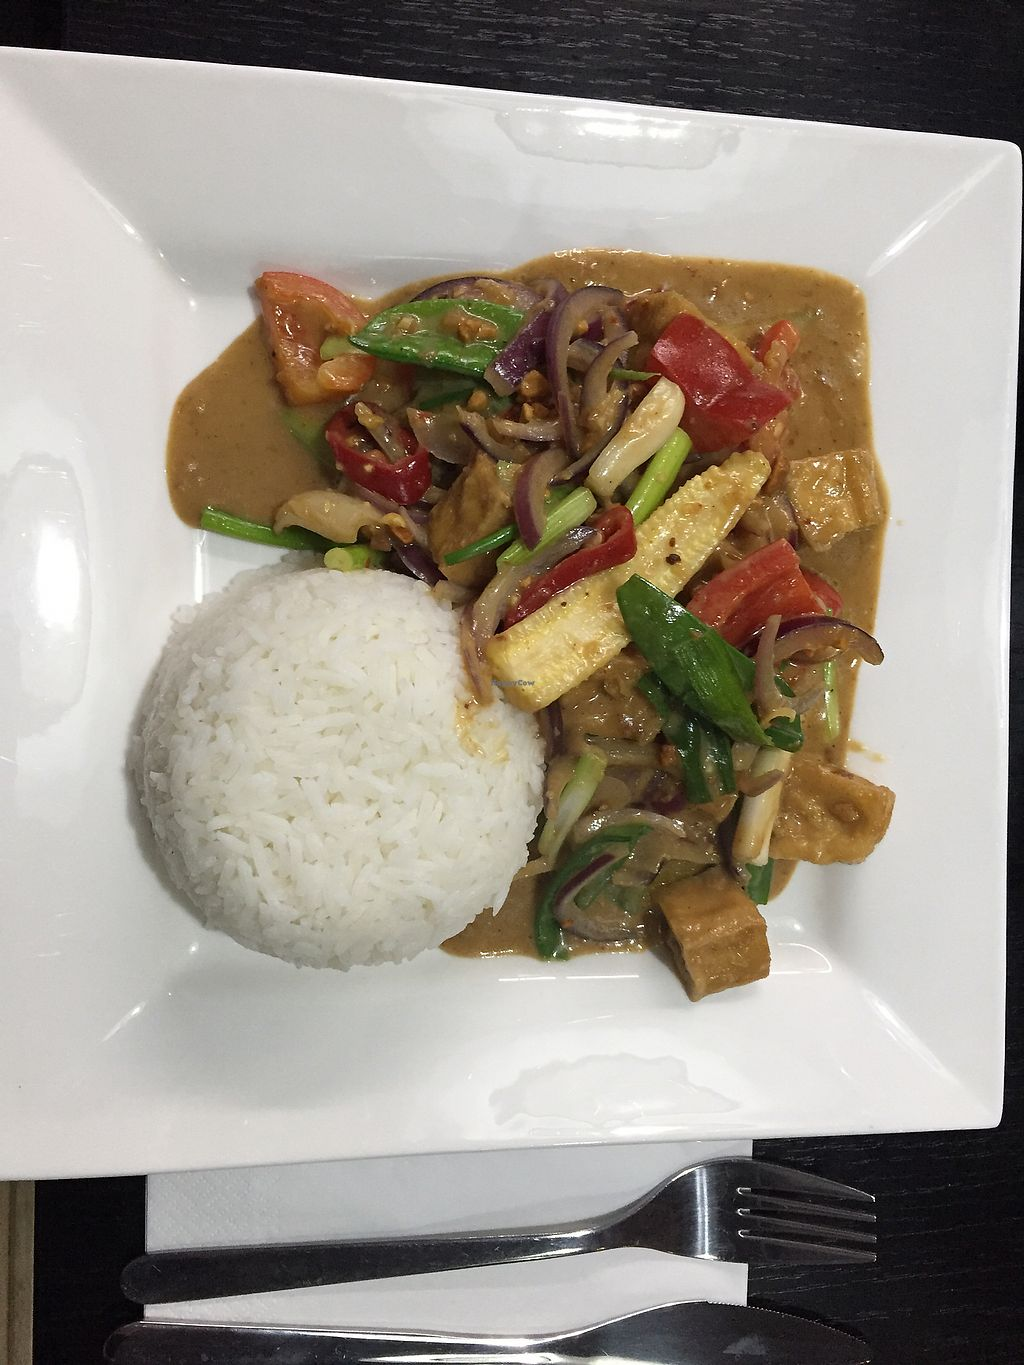 """Photo of Hx46 Cafe  by <a href=""""/members/profile/lmd06"""">lmd06</a> <br/>Satay with rice  <br/> September 29, 2017  - <a href='/contact/abuse/image/101903/309653'>Report</a>"""